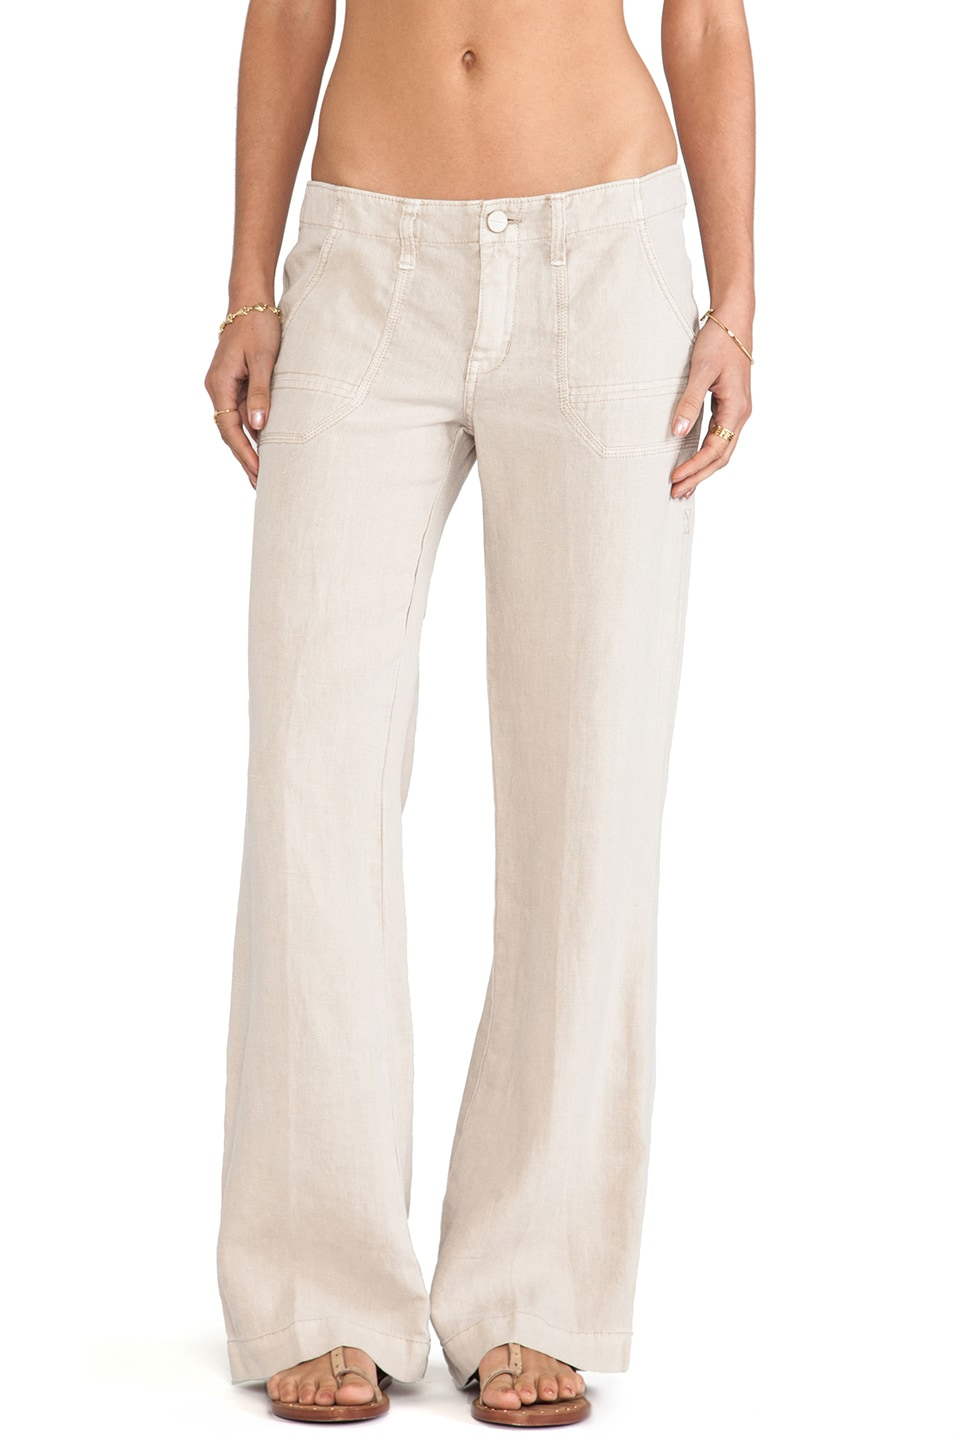 Sanctuary Linen Breezeway Pants in Flax